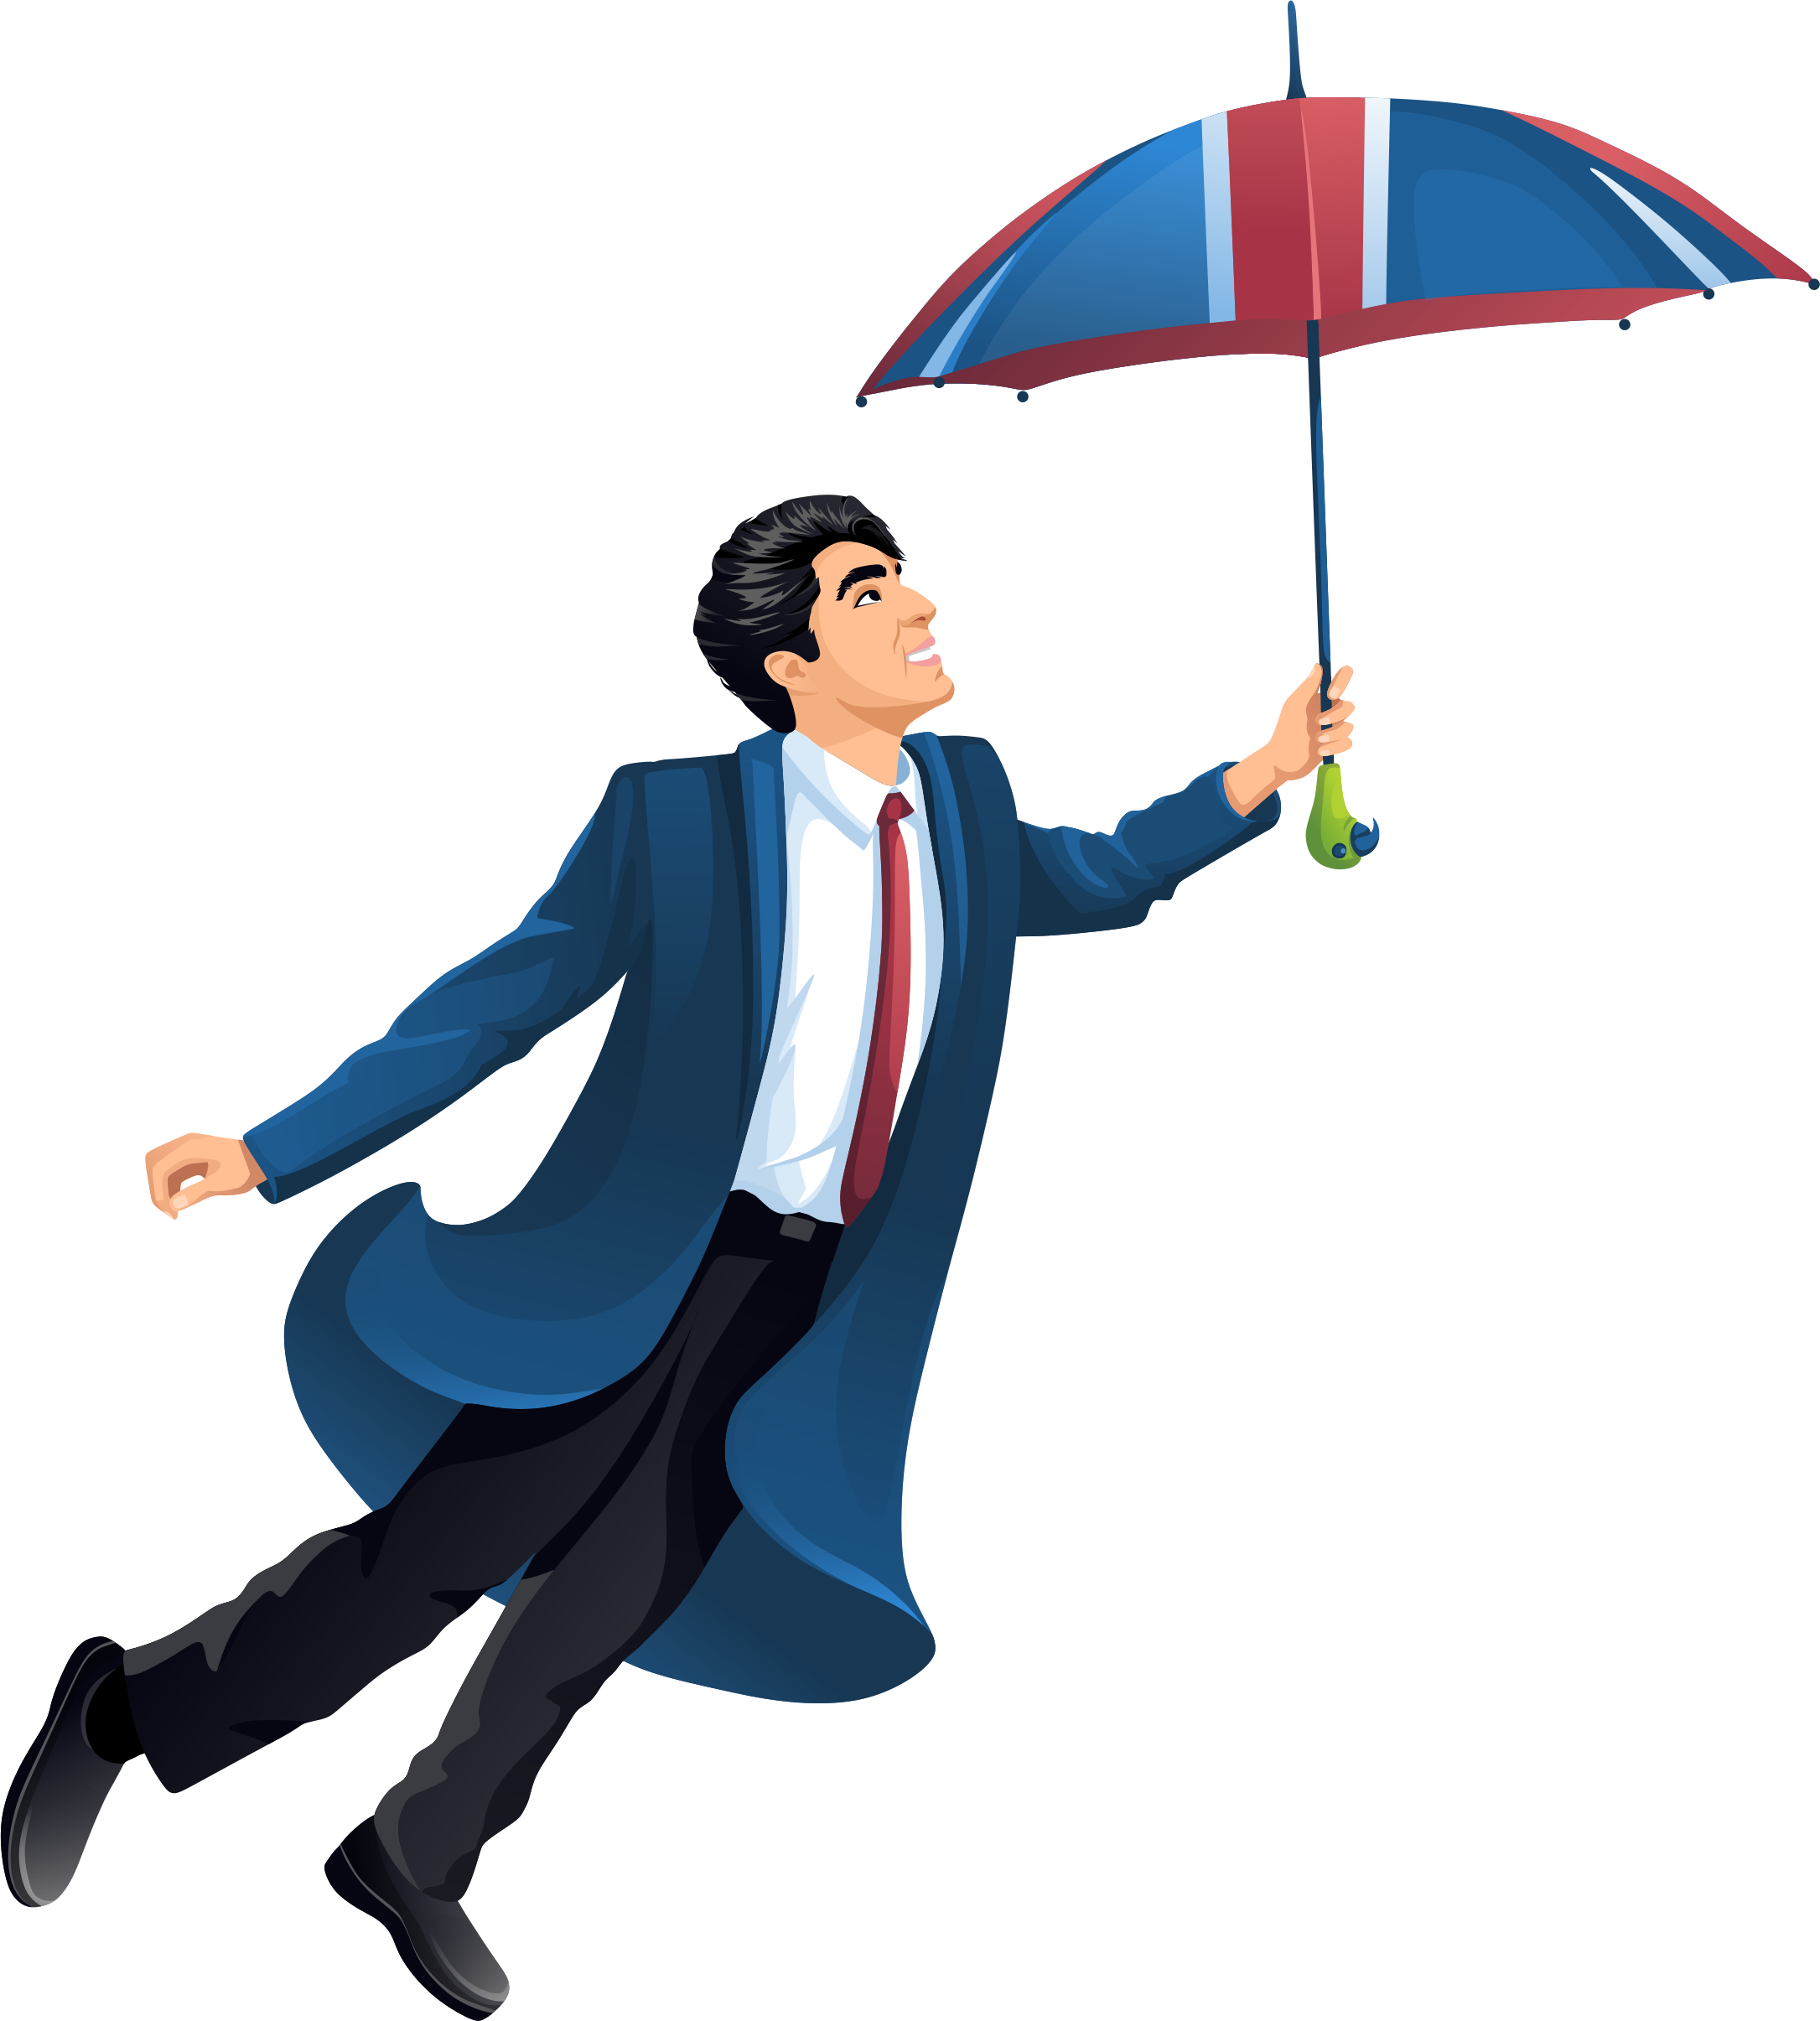 Adrian flying with an umbrella.